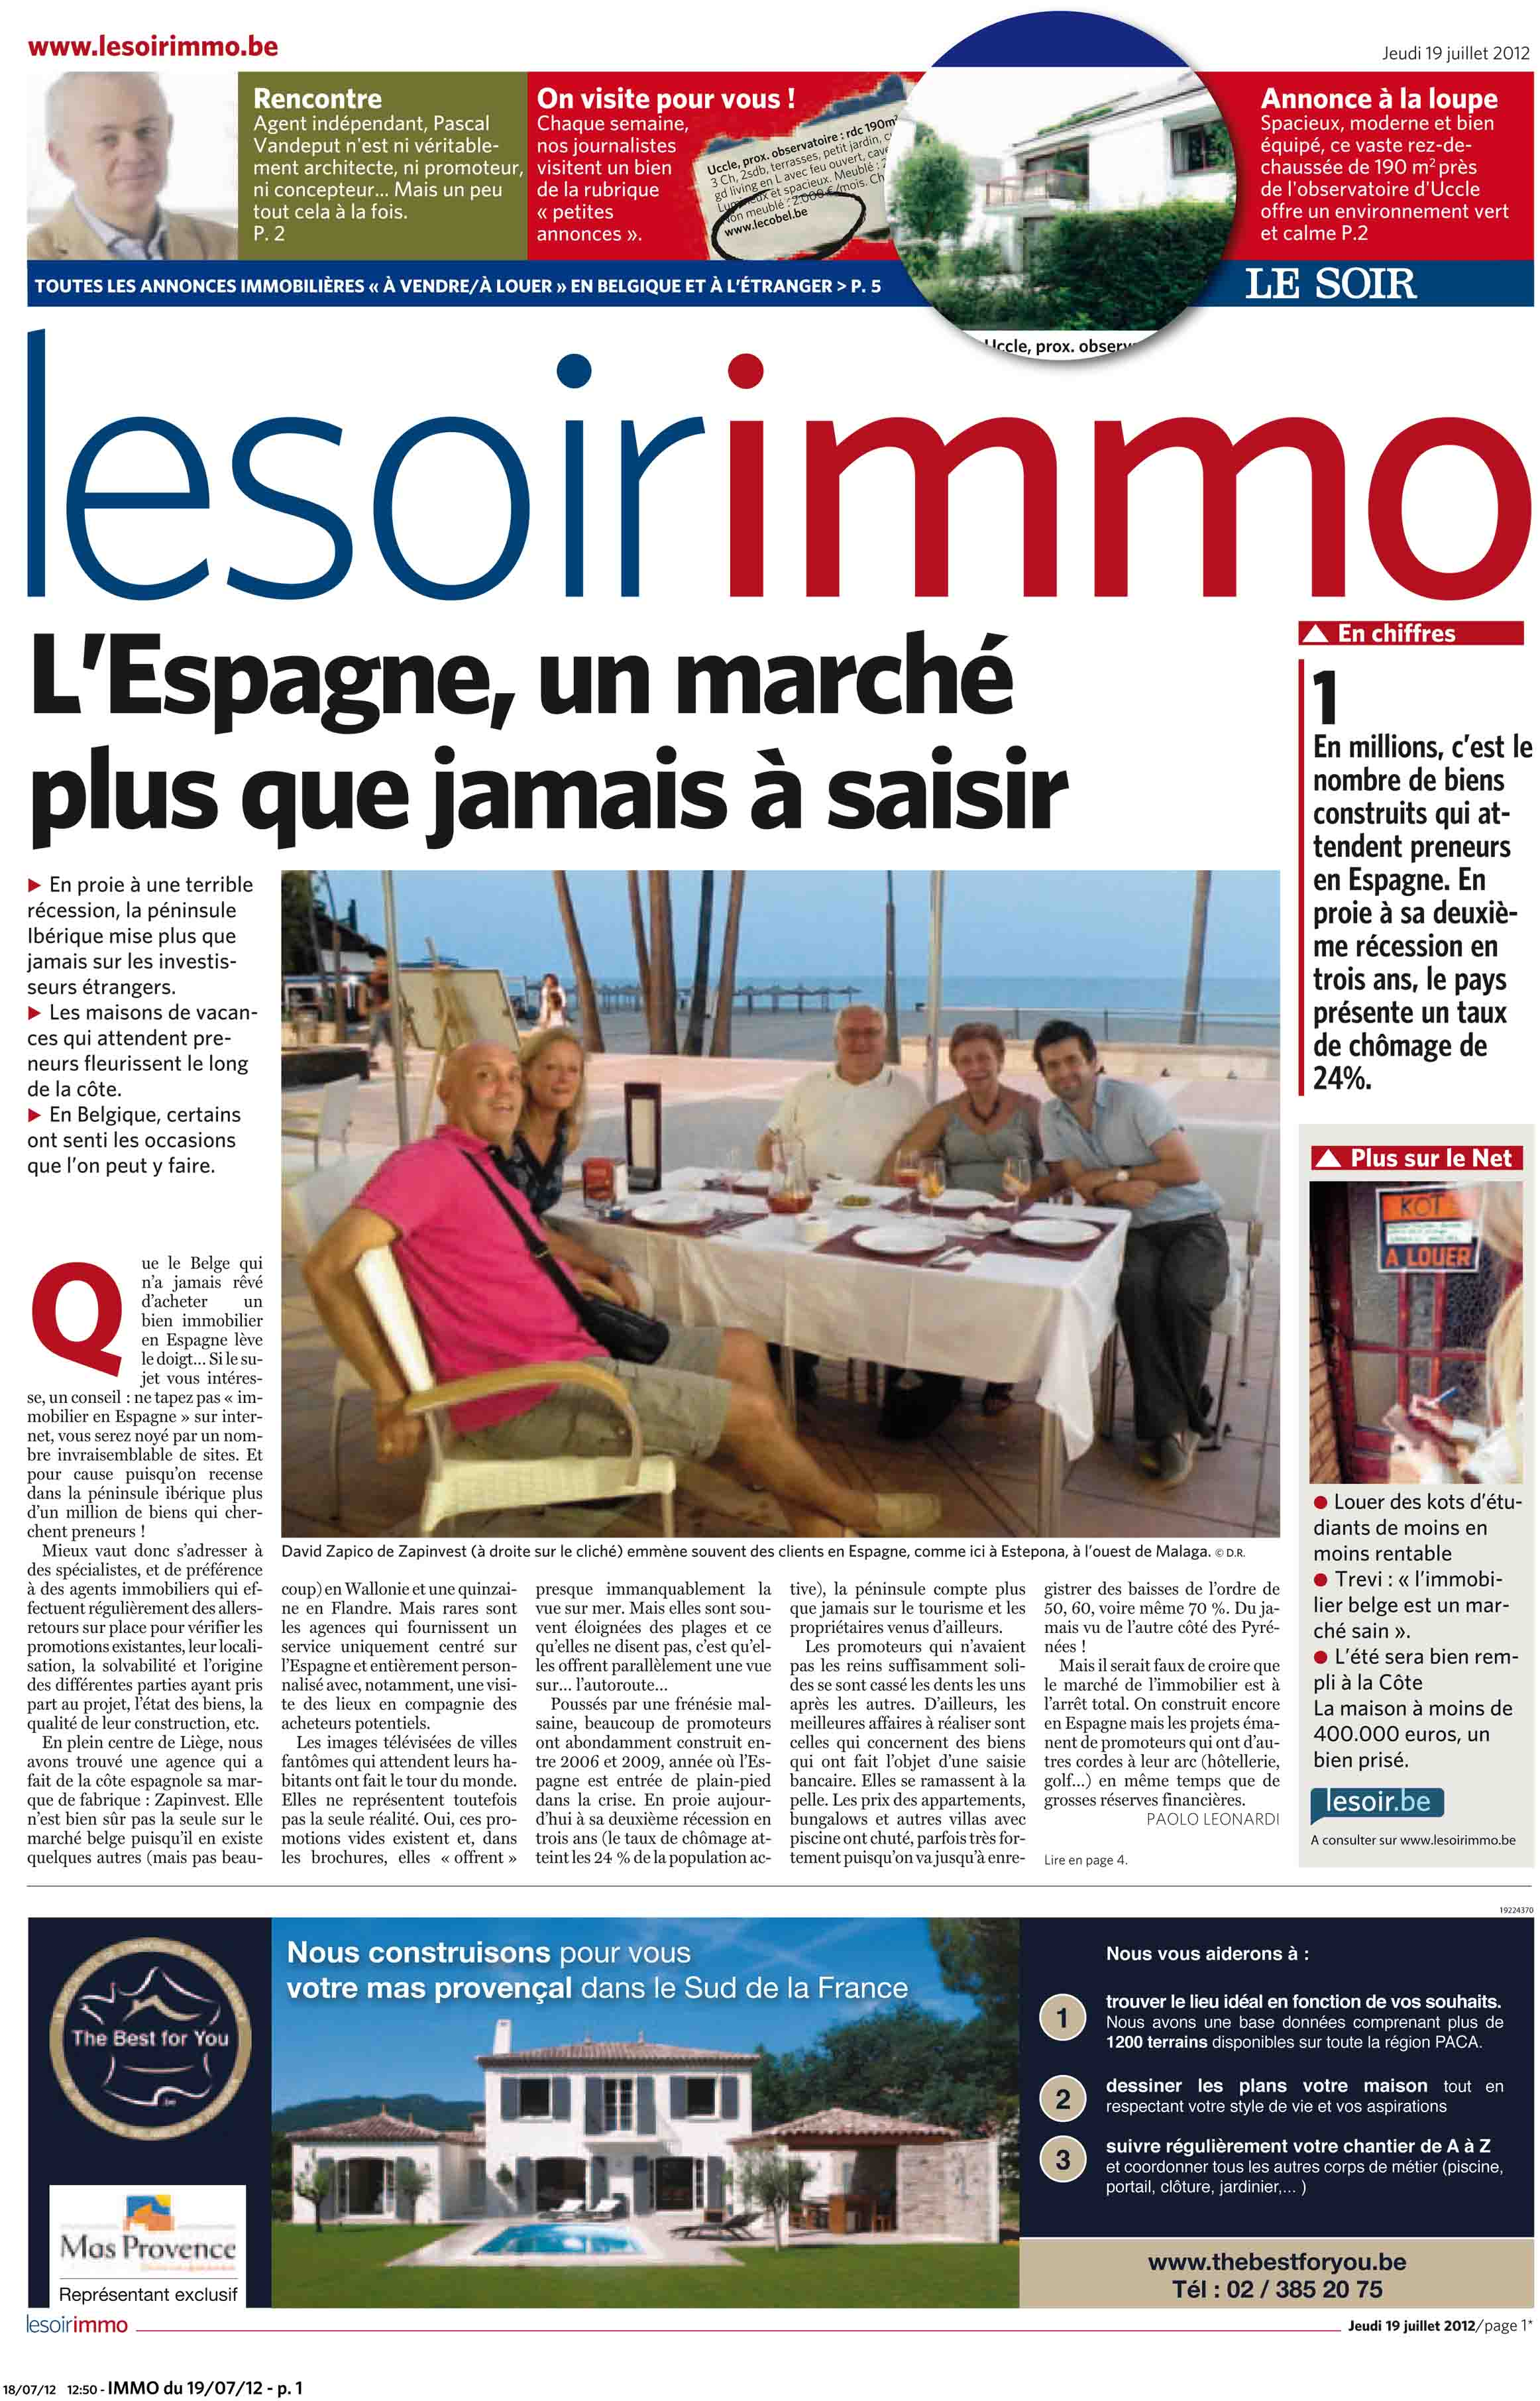 3 Article Soir Immo 1